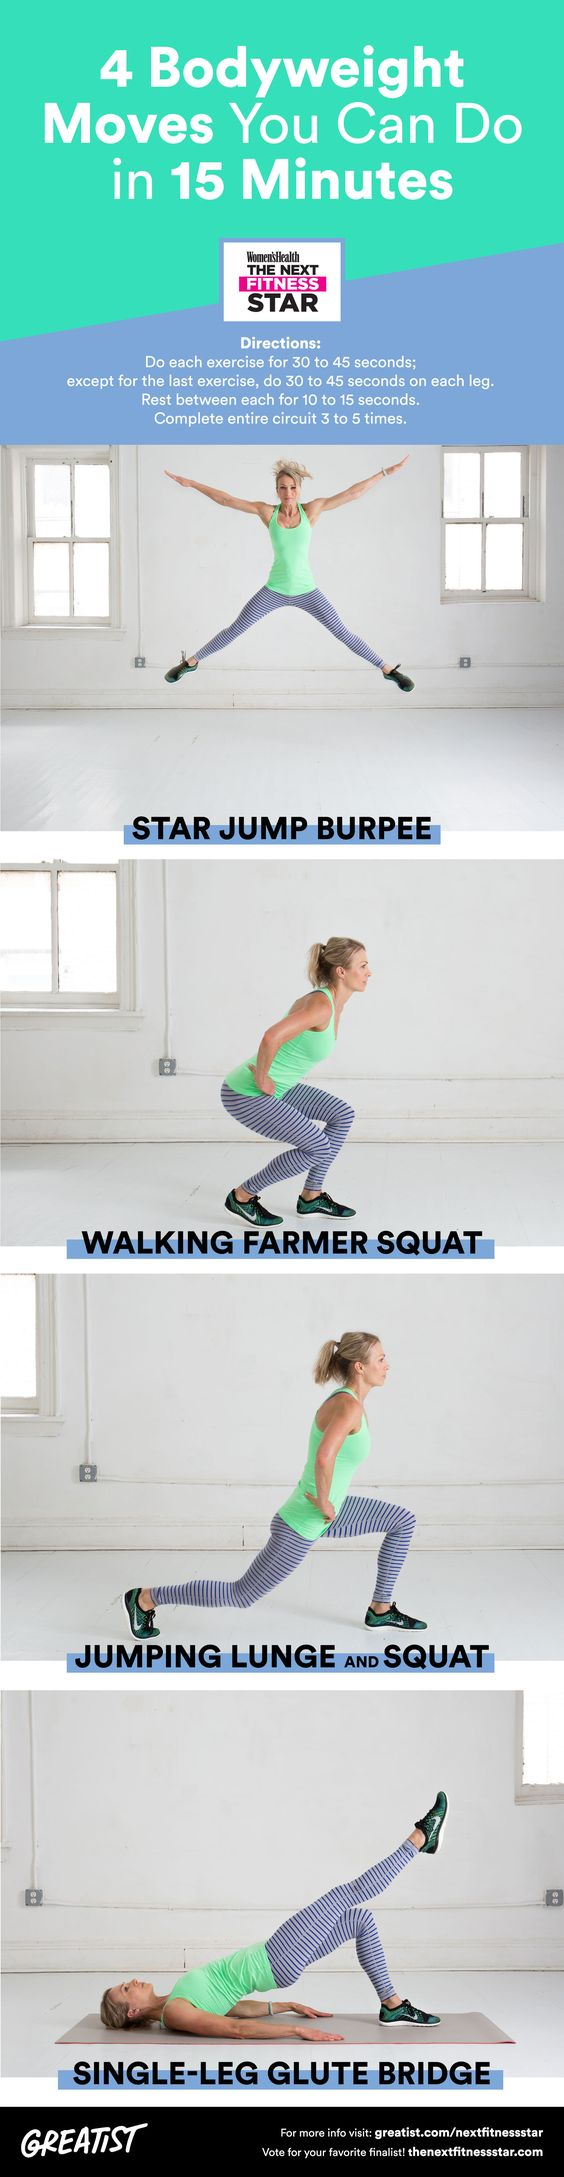 Here's how Next Fitness Star finalist Elyse Miller sneaks in a workout when she's short on time. #bodyweight #exercises http://greatist.com/move/bodyweight-exercises-15-minute-hiit-workout-for-crazy-busy-days